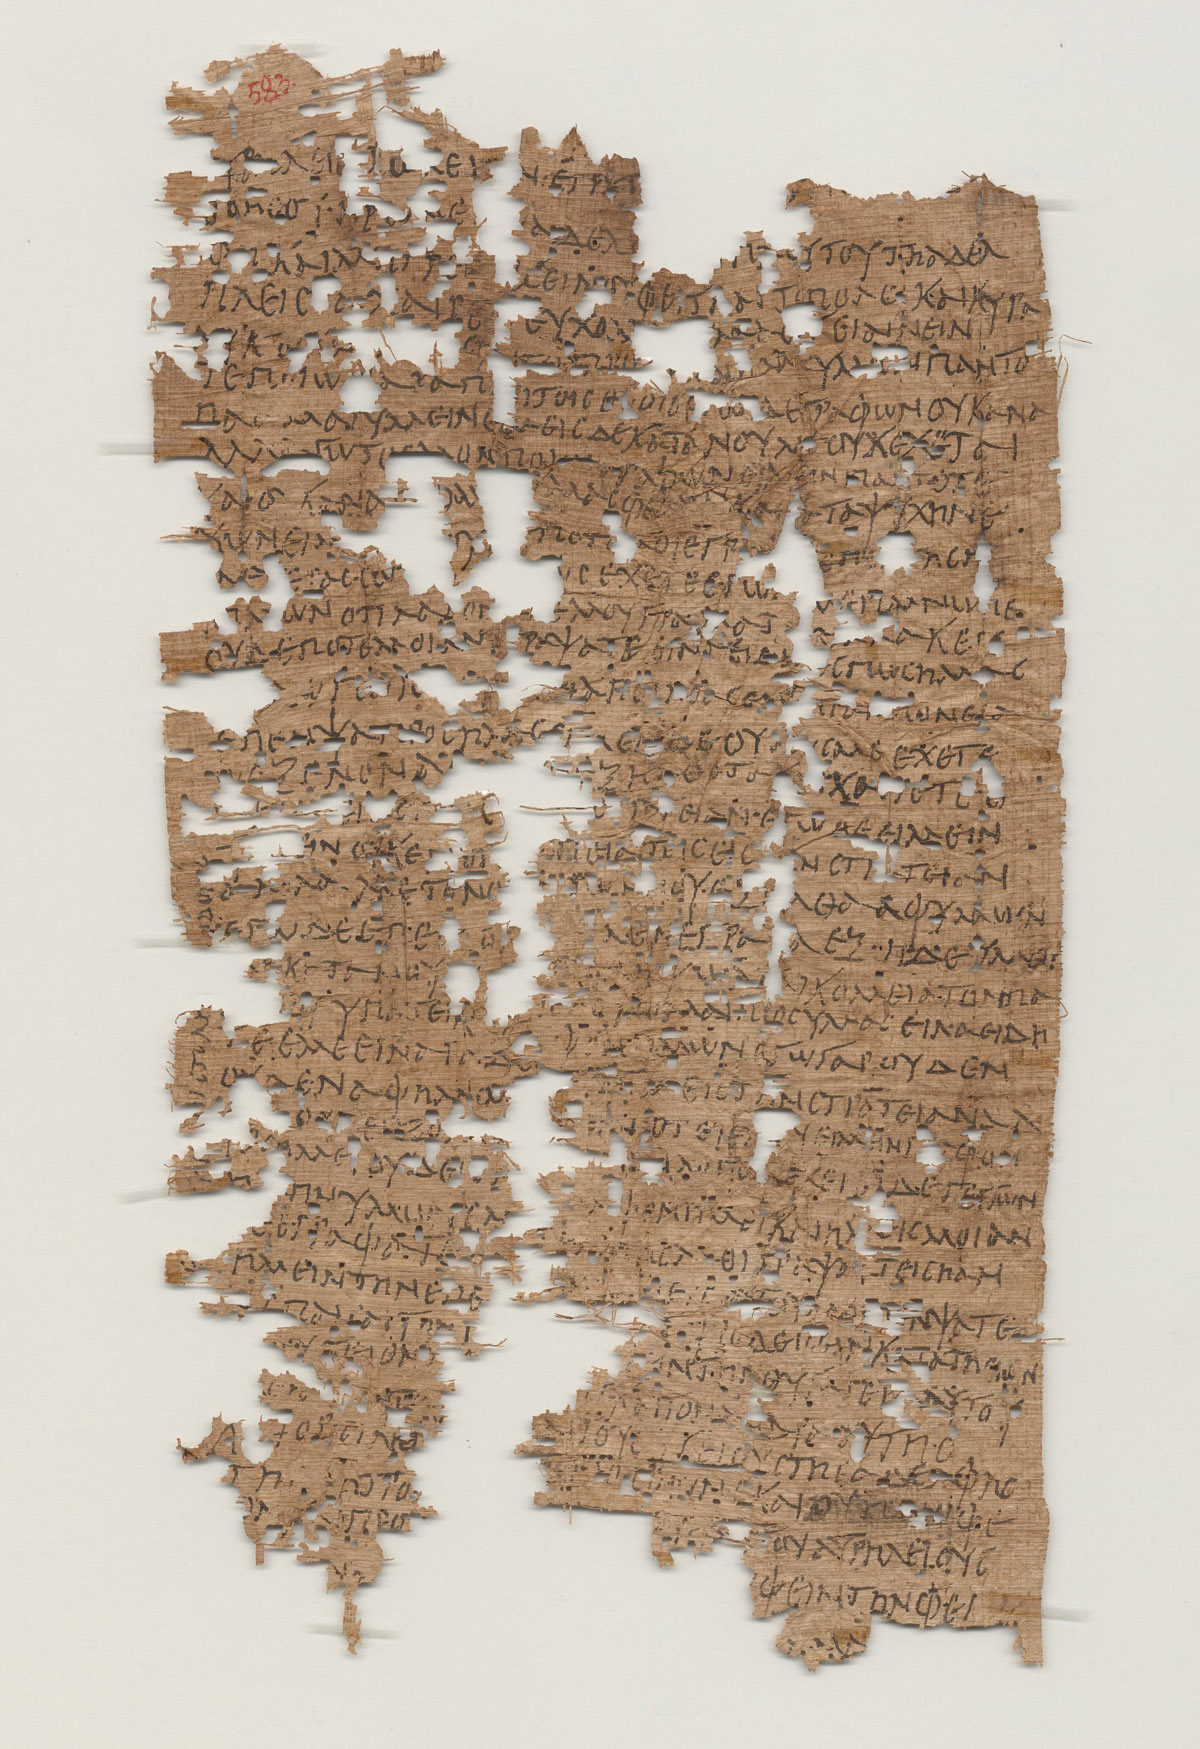 A Soldier's Letter Home From The 3rd Century AD Deciphered